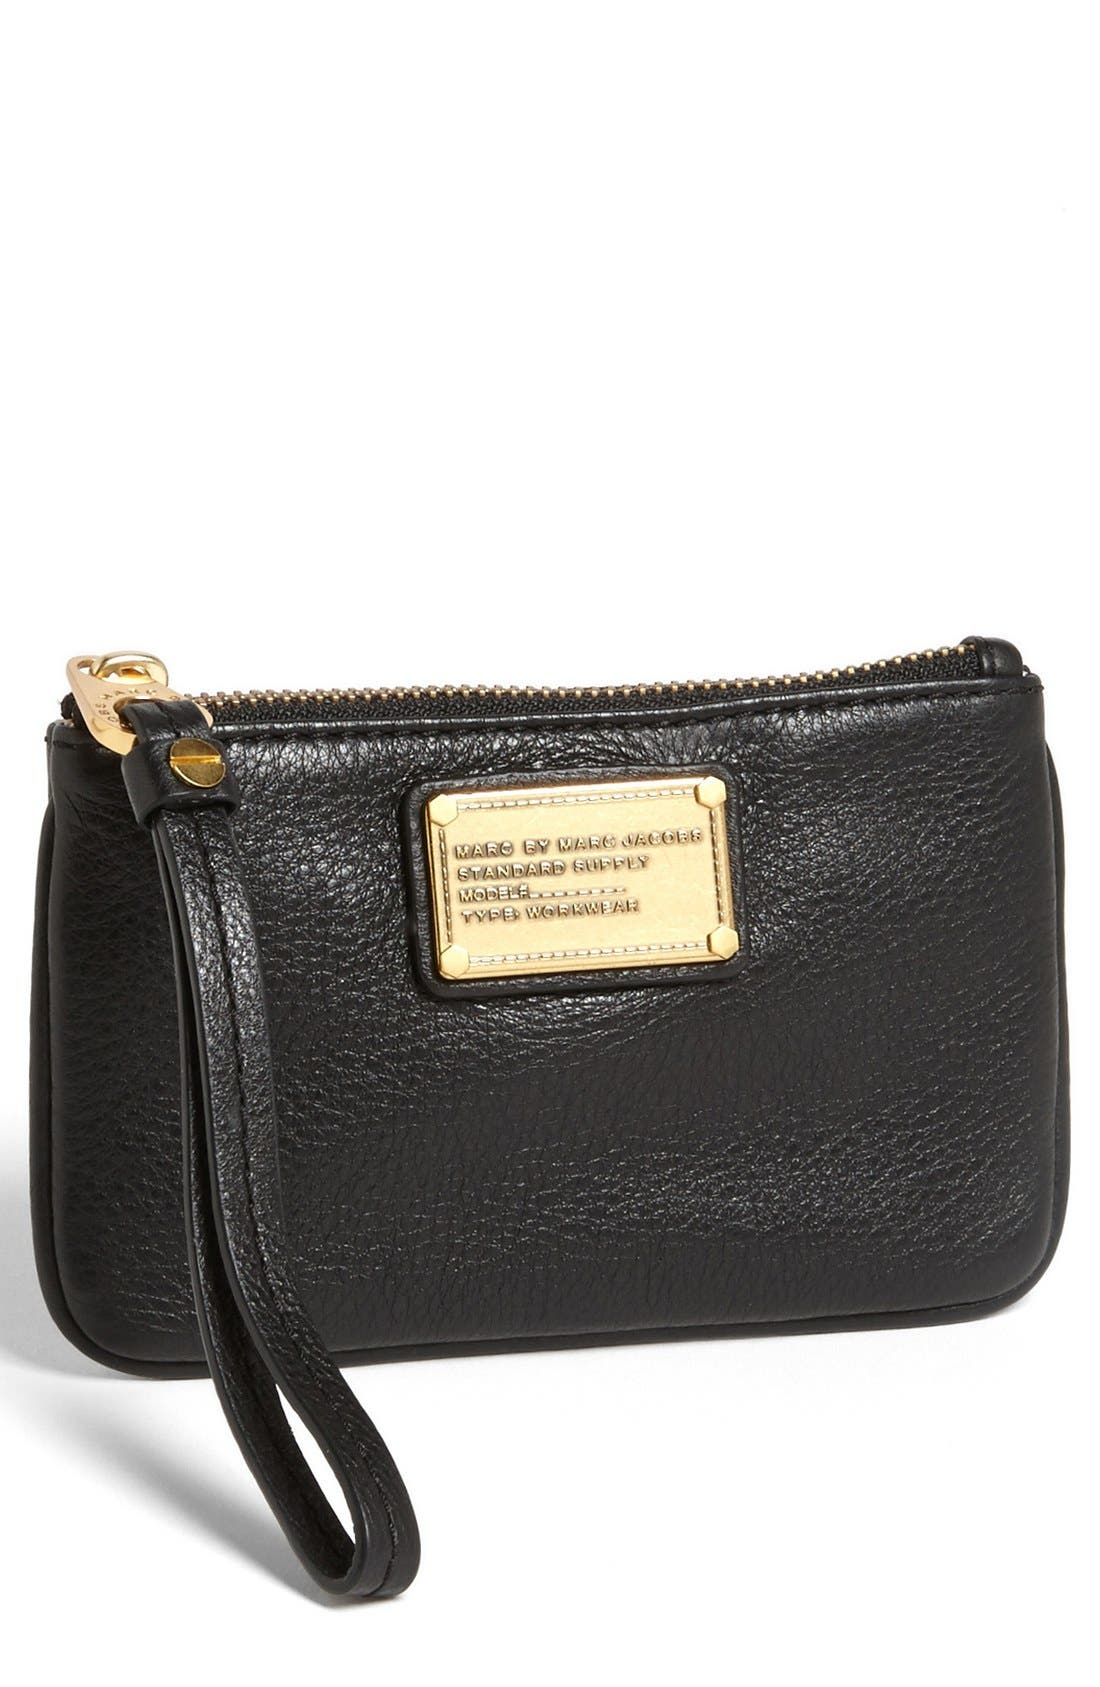 "MARC BY MARC JACOBS 'Small Classic Q"" Wristlet, Main, color, 001"